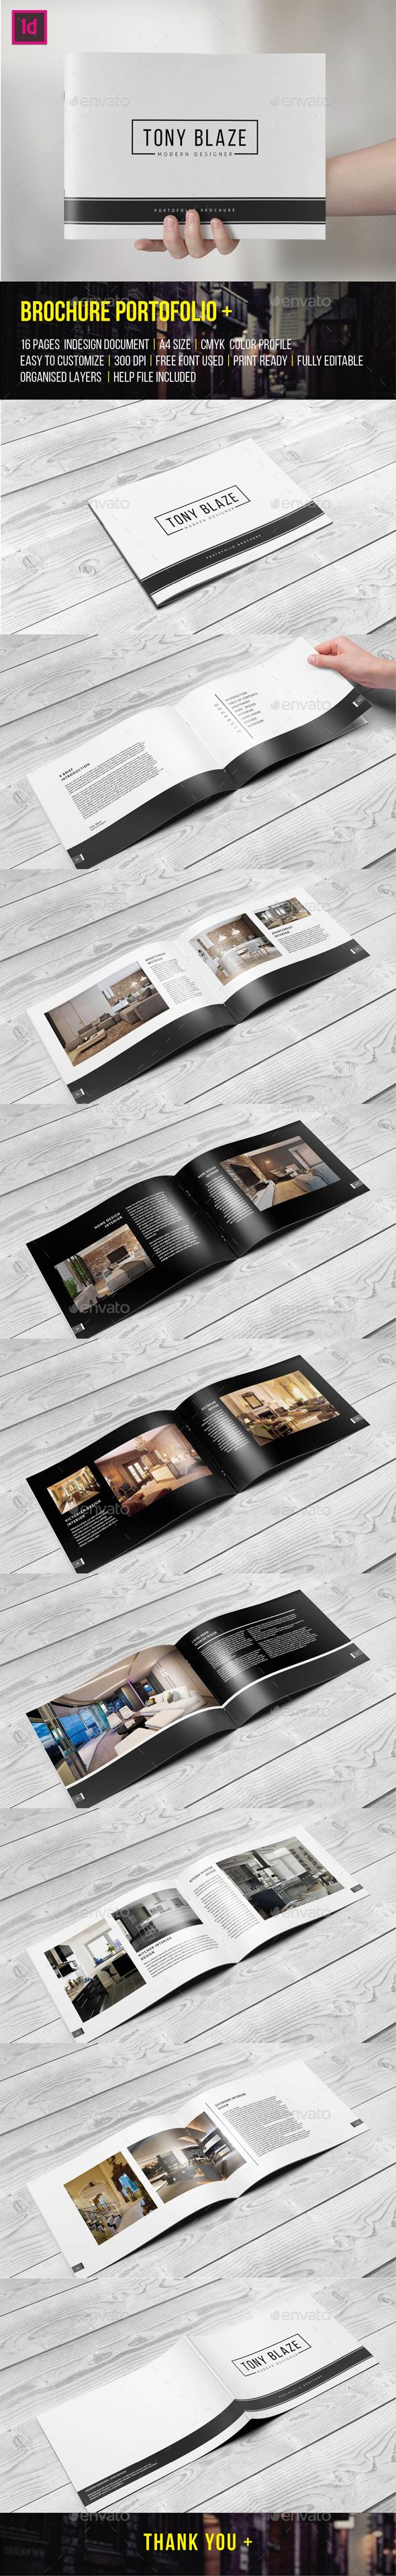 Brochure Portfolio 16 Pages (CS4, 29.7x21, 210x297, a4, agency, architecture, art, book, booklet, brochure, business, clean, corporate, customizable, design, designer, elegant, fashion, flexible, indesign, interior, layout, minimal, modern, photo, photographer, portfolio, project, showcase, template)